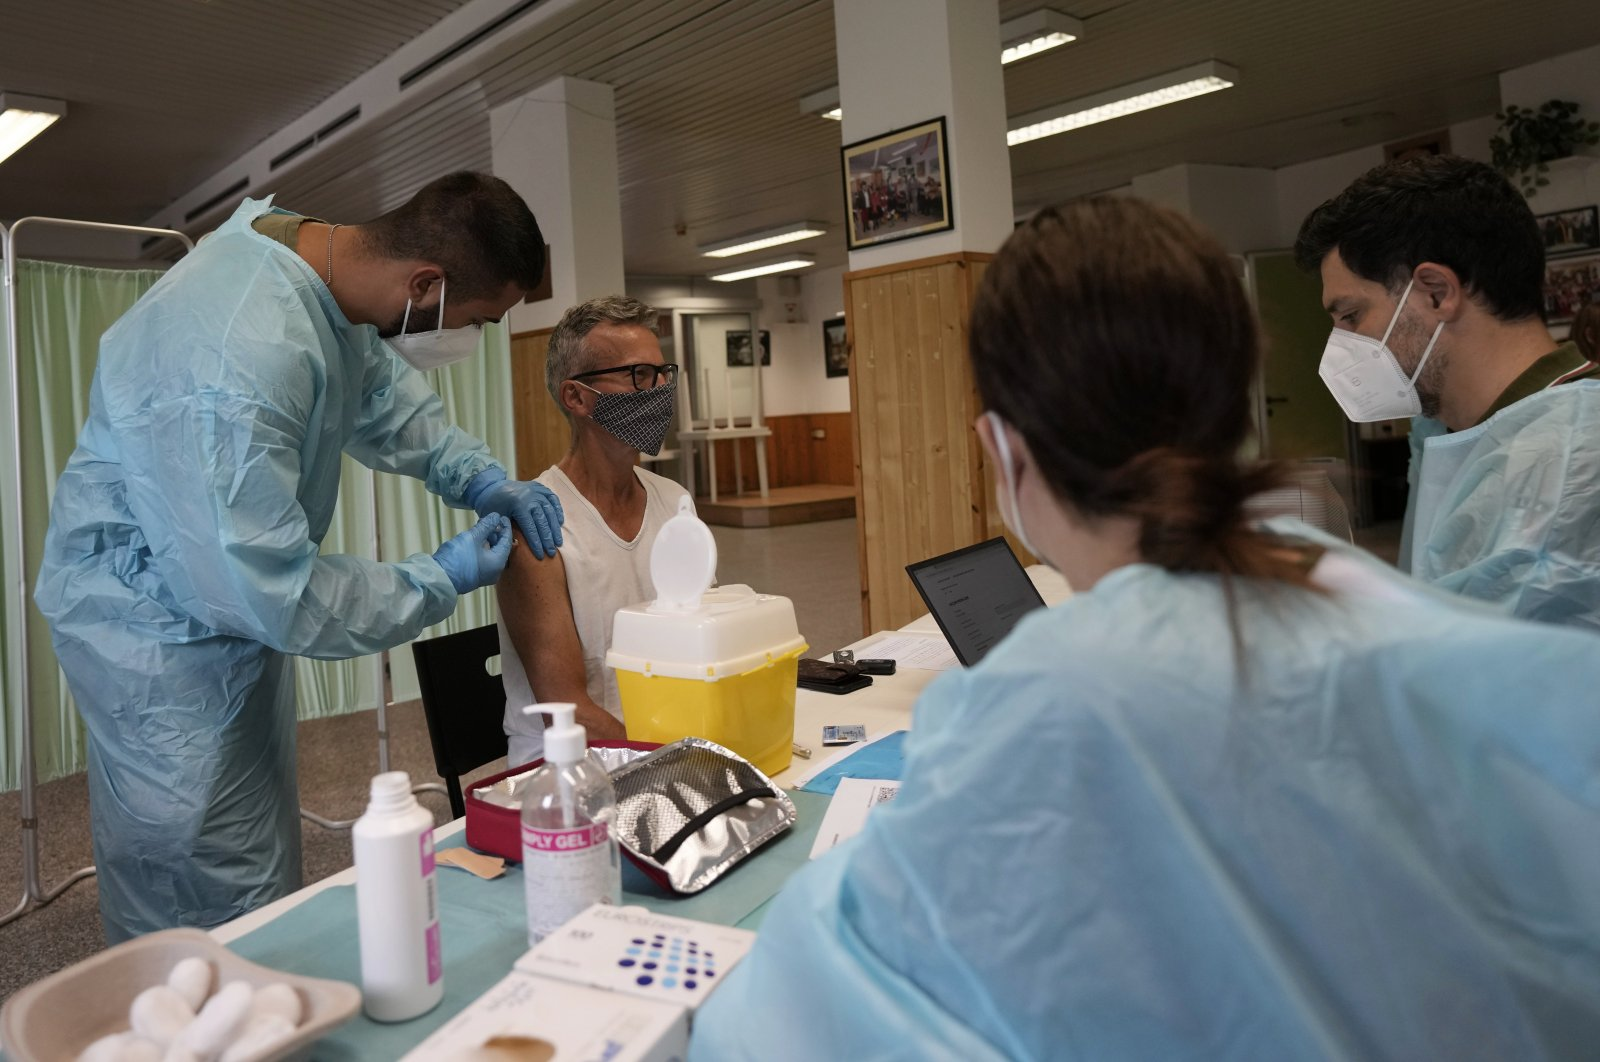 Medical workers administer the Johnson & Johnson vaccine for COVID-19 to Carlo Picella at a cultural center on the outskirts of Milan, Italy, July 28, 2021. (AP Photo)